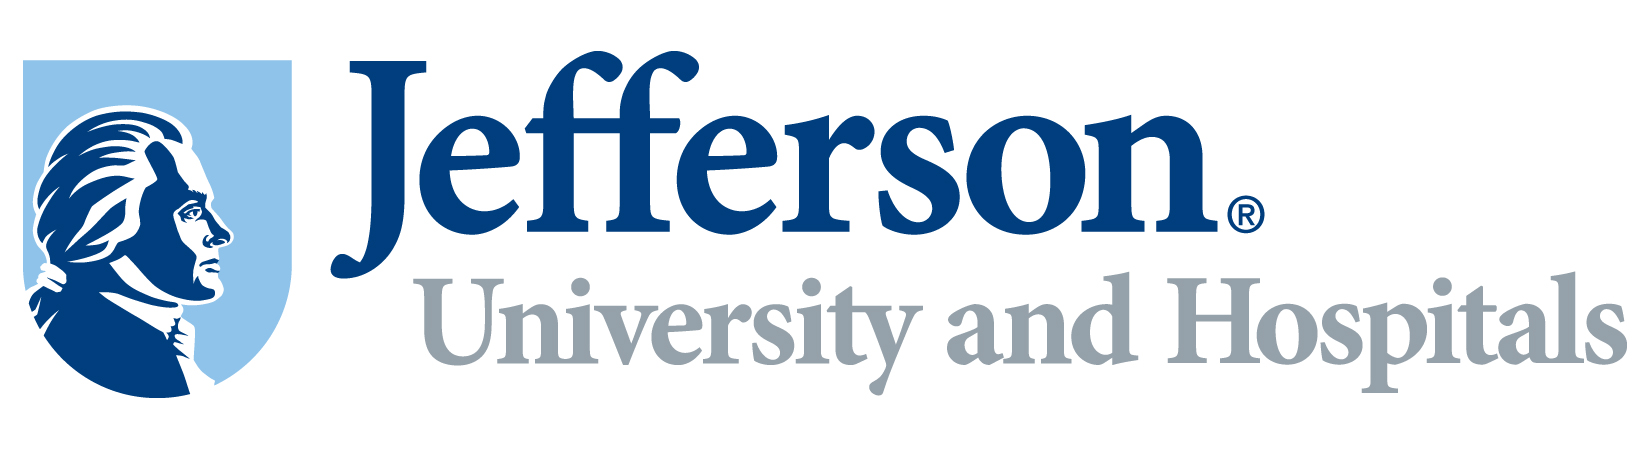 Jefferson University and Hospitals logo.